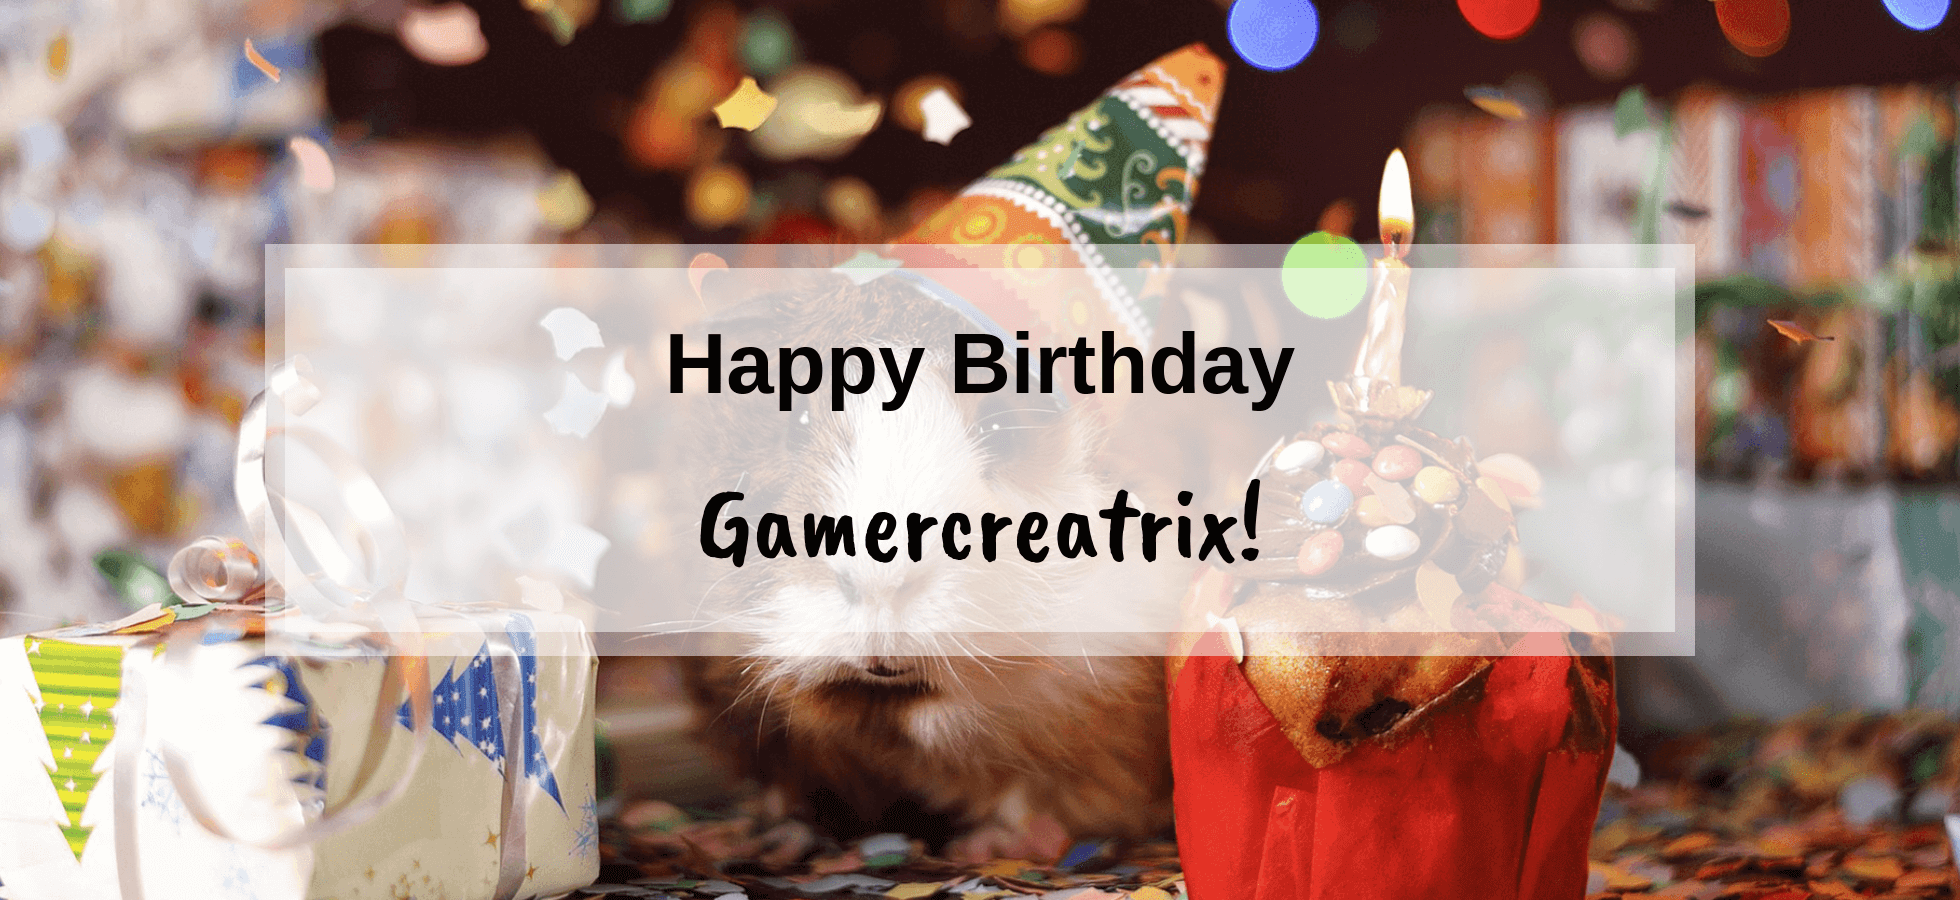 Happy Birthday, The Gamercreatrix blog is 1 year old!